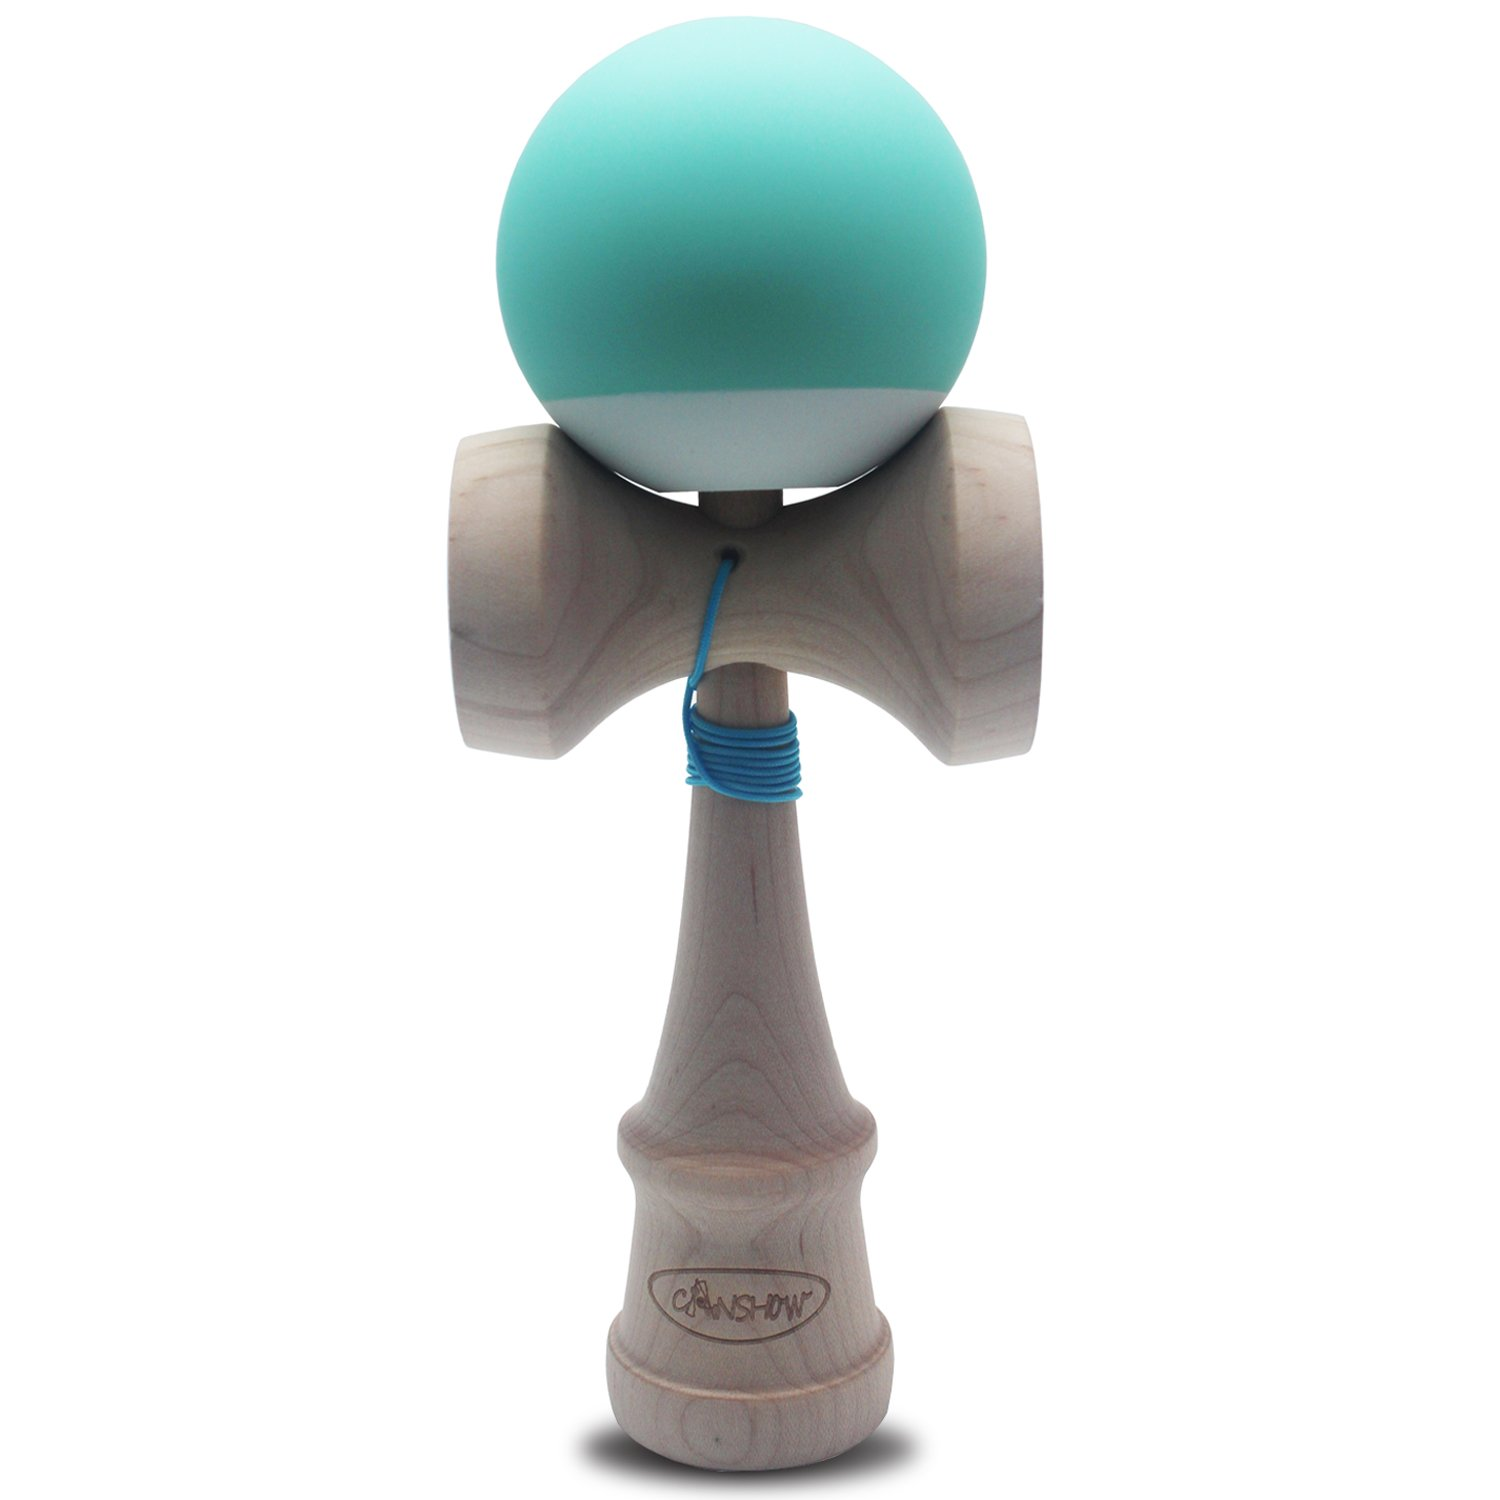 CANSHOW Kendama Maple Wood Toy - Rubber Blue Yellow and White Tama Deluxe Pro Model - with Extra String LTD